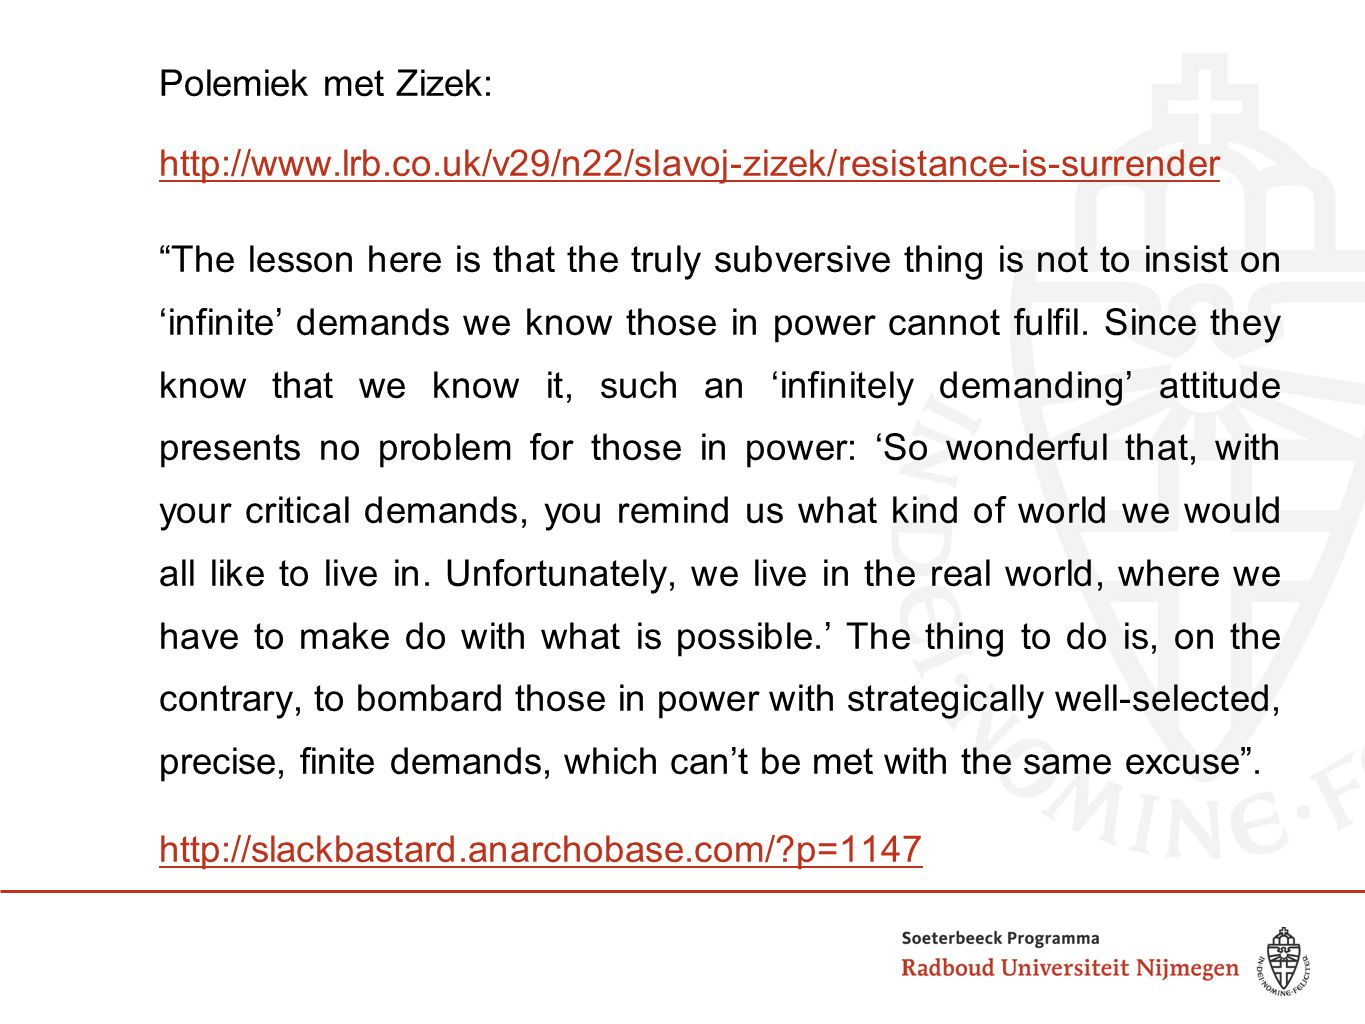 Polemiek met Zizek: http://www.lrb.co.uk/v29/n22/slavoj-zizek/resistance-is-surrender The lesson here is that the truly subversive thing is not to insist on 'infinite' demands we know those in power cannot fulfil.